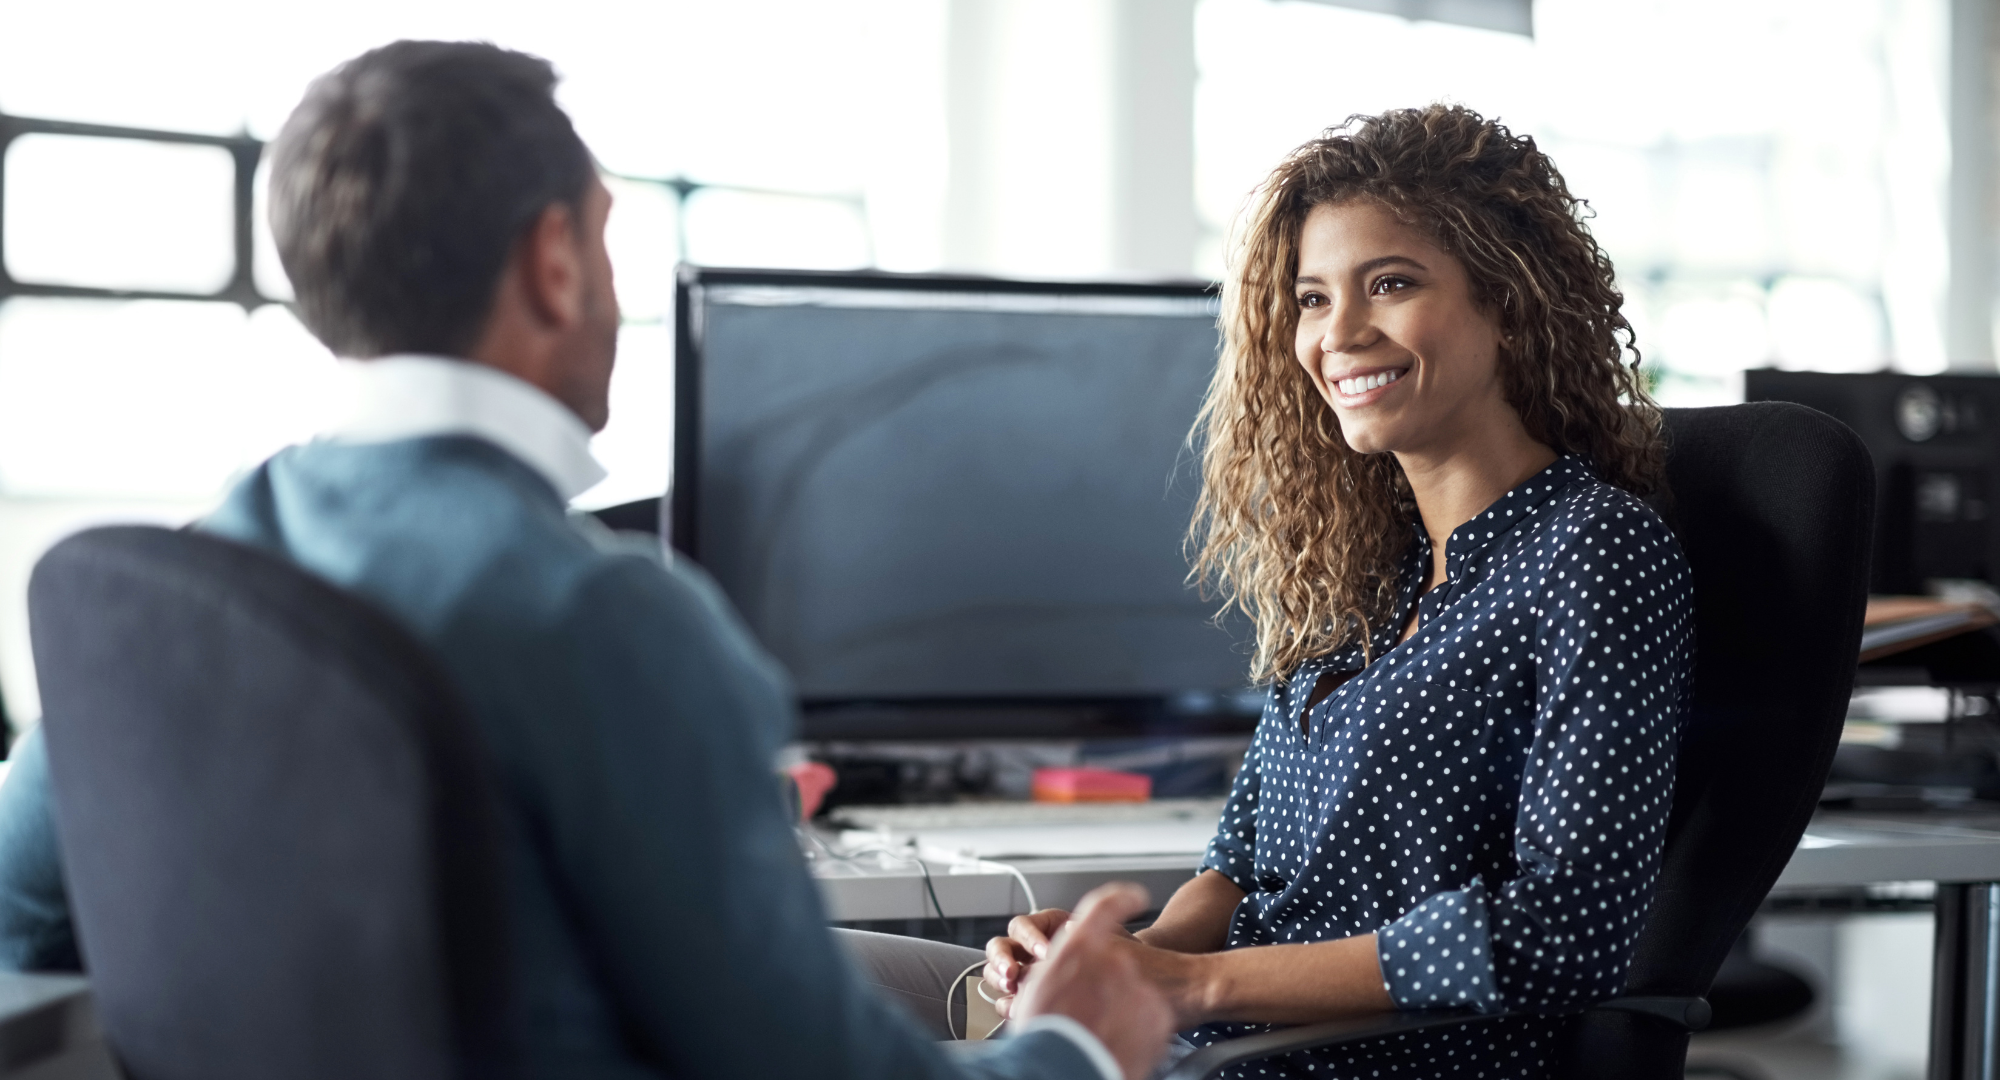 Three Questions to Quickly Gauge Employee Motivation